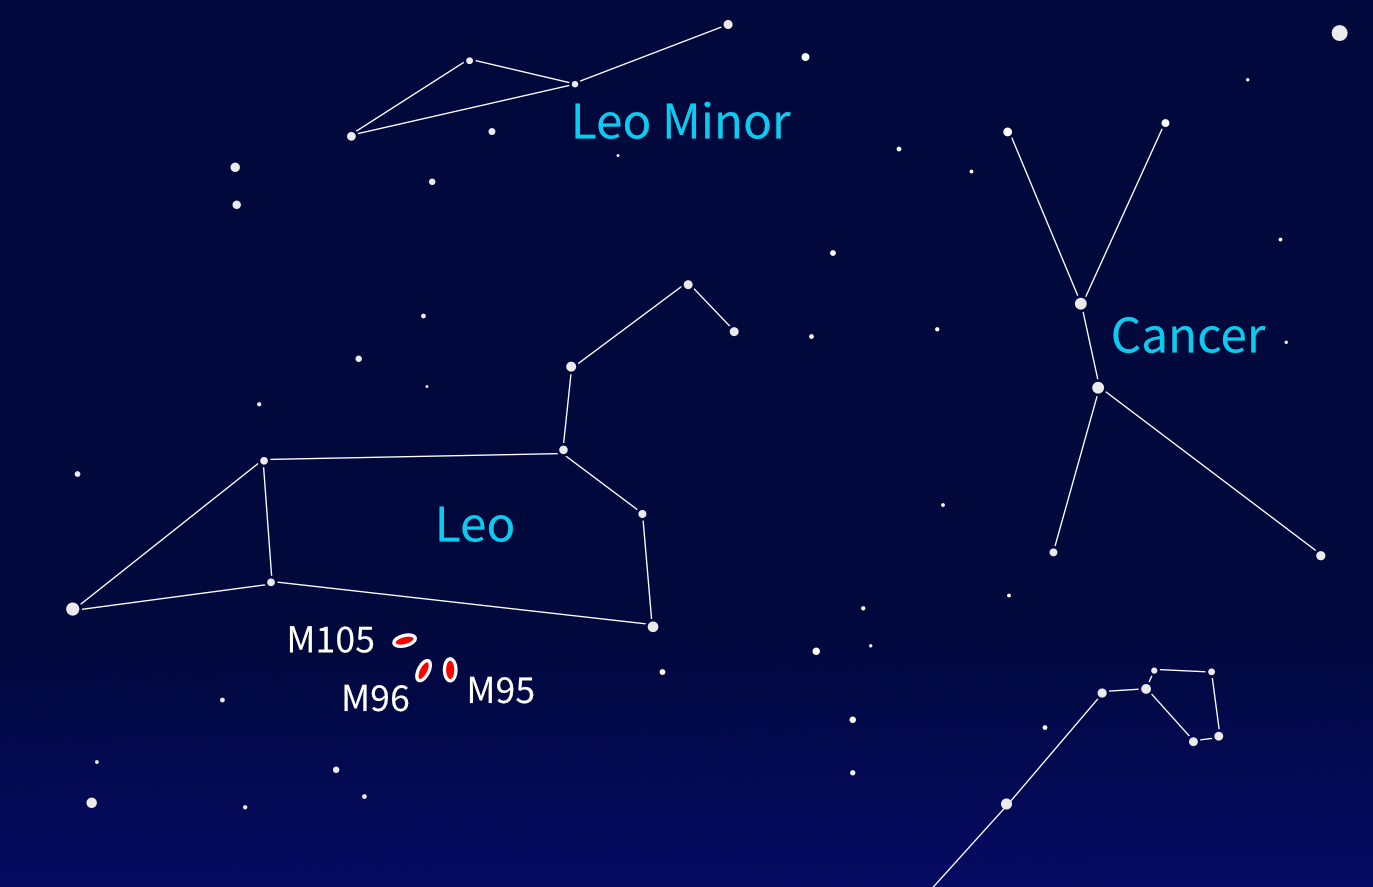 Three Galaxies in the constellation of Leo